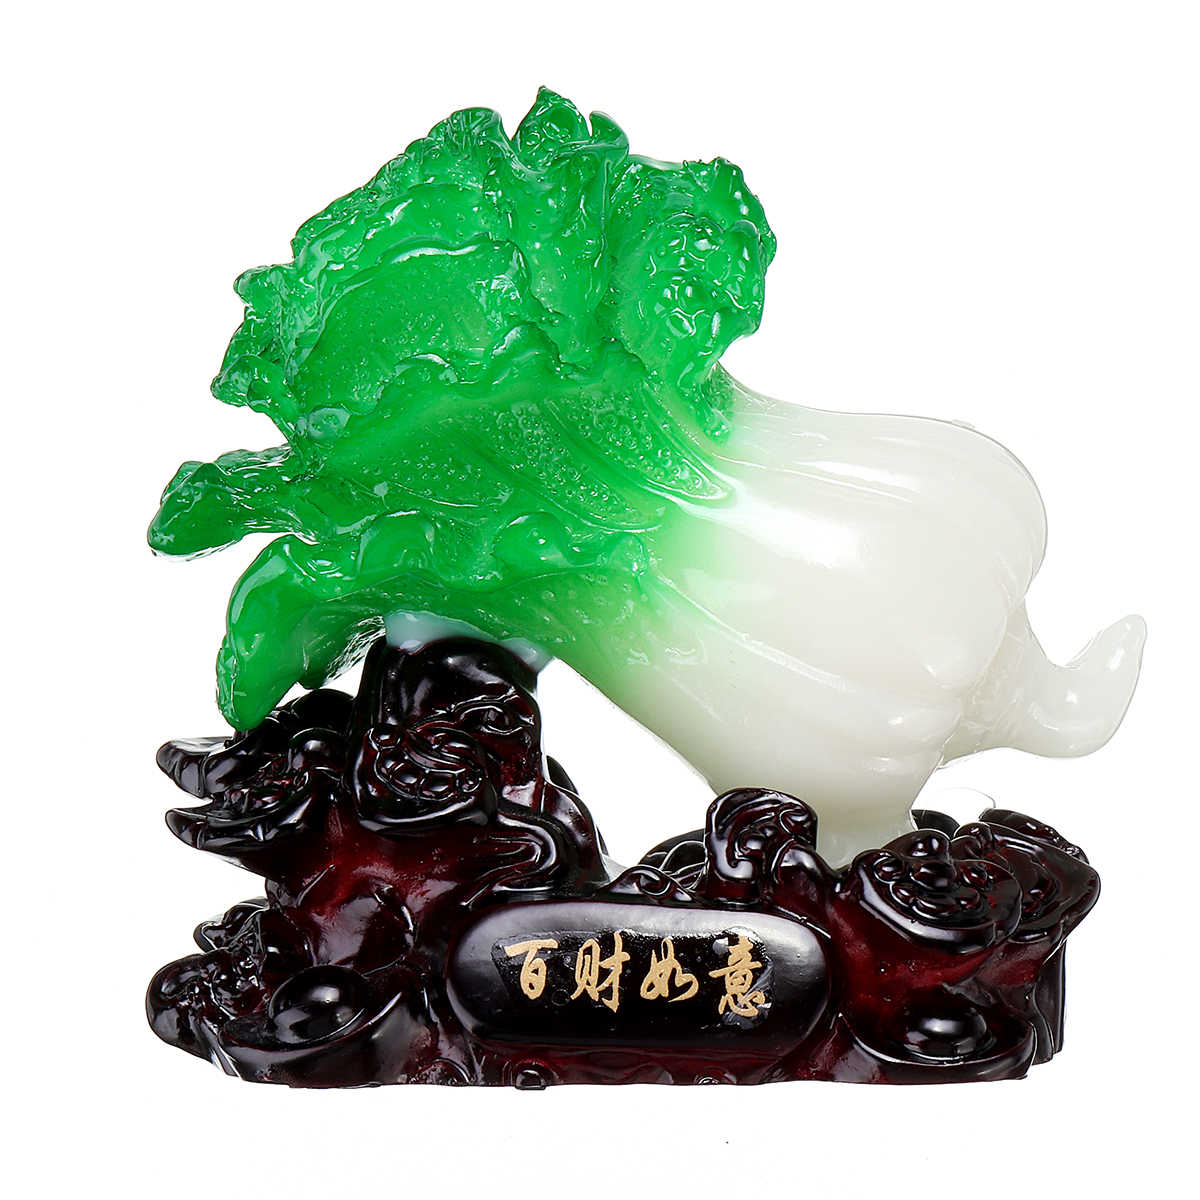 Chinese Lucky Jade Cabbage Decoration Opened Housewarming Gifts Home Decorations Feng Shui Living Room Bedroom Desk Decoration